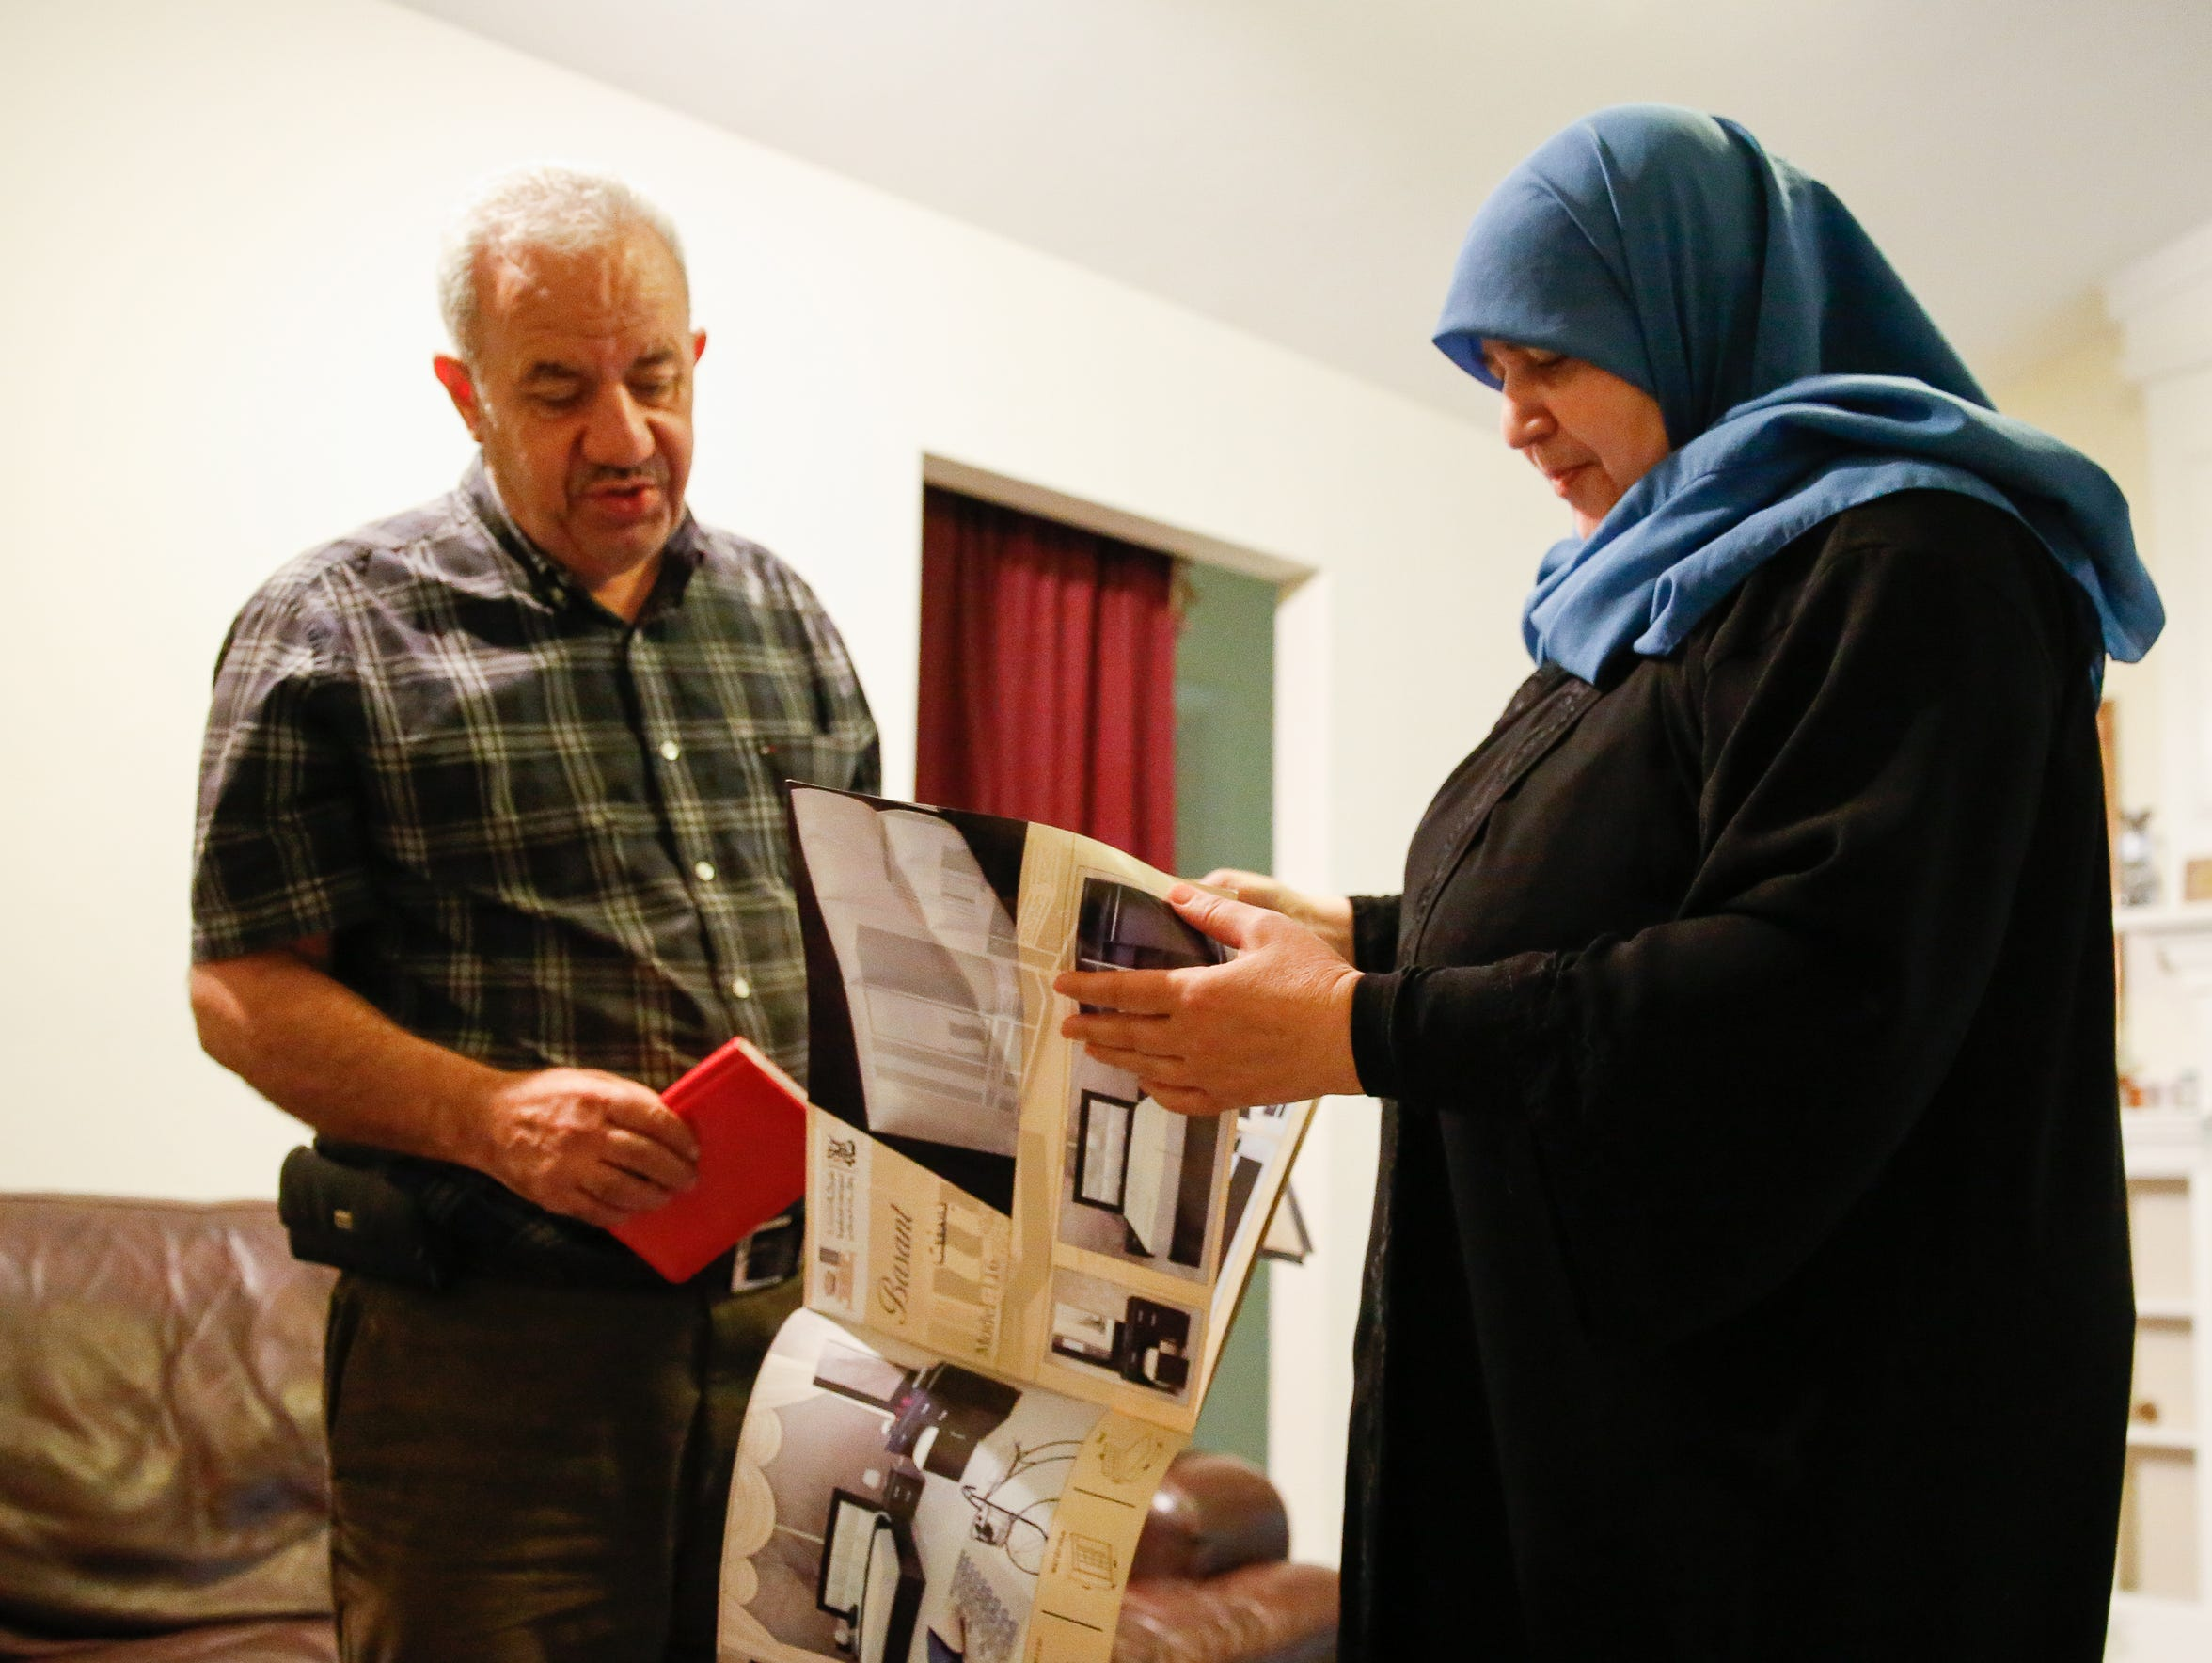 Bassam Alhalabi and his wife Osaima Alhalabi look through an archive of their family's furniture business located in Damascus, Syria. The Alhalabis had to close the business and flee Syria due to the country's ongoing civil war.